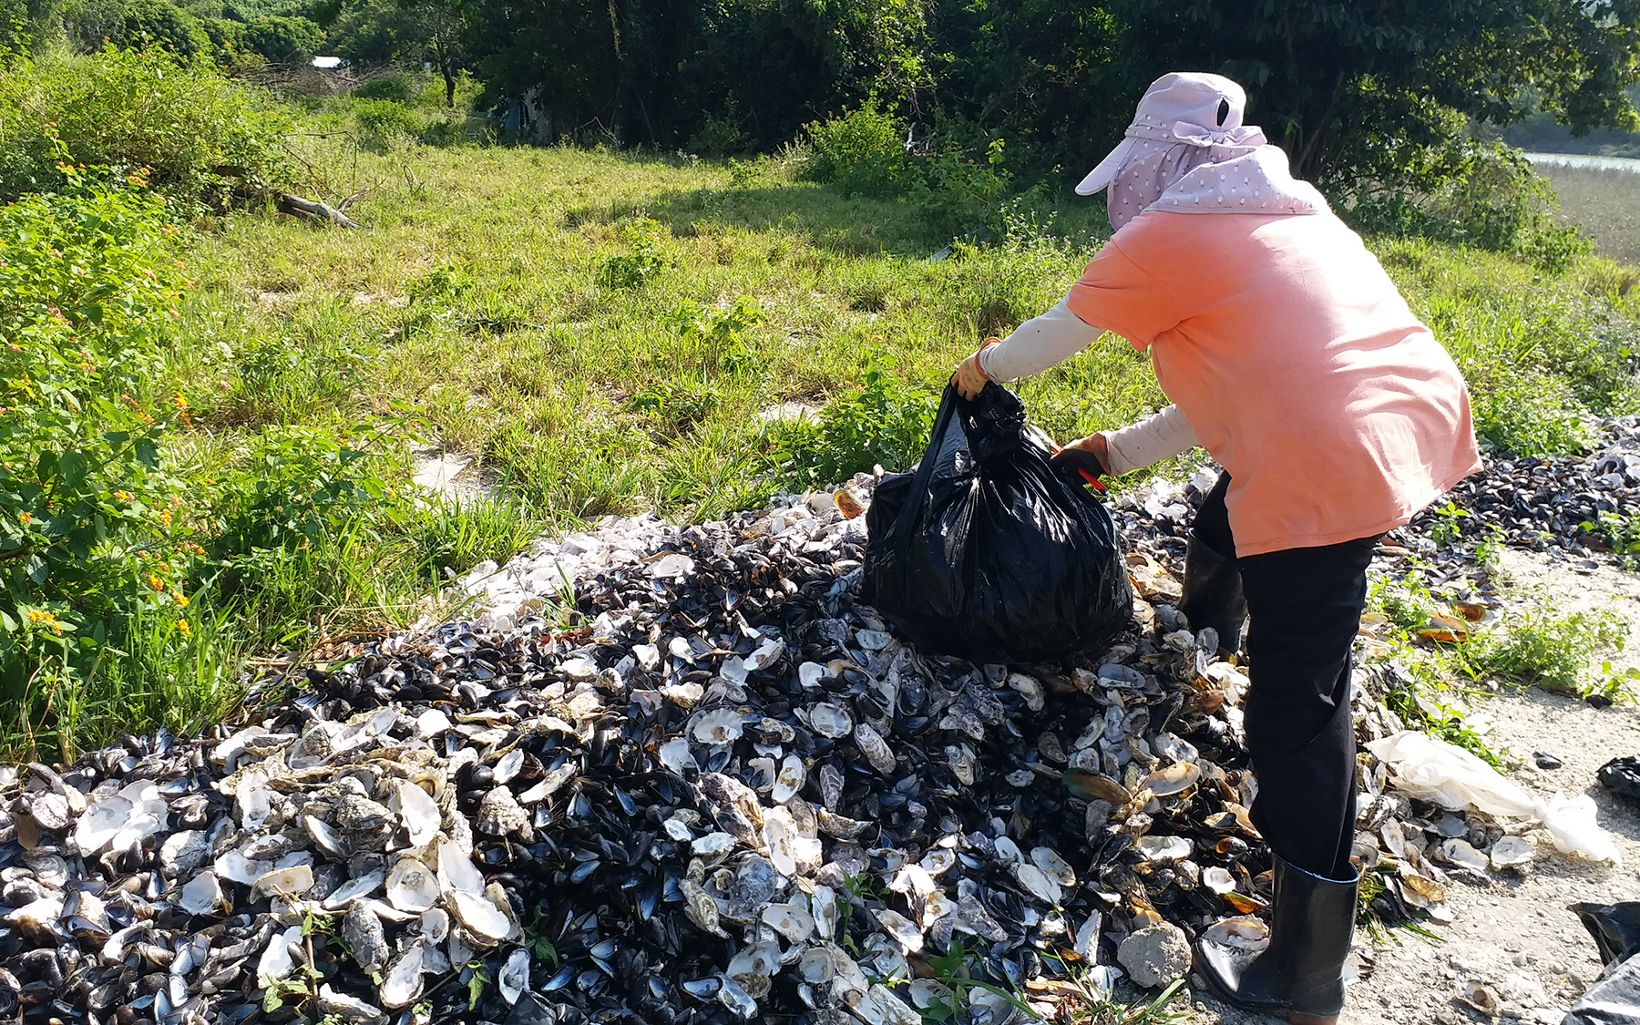 A woman empties a bag of oyster shells onto a pile.